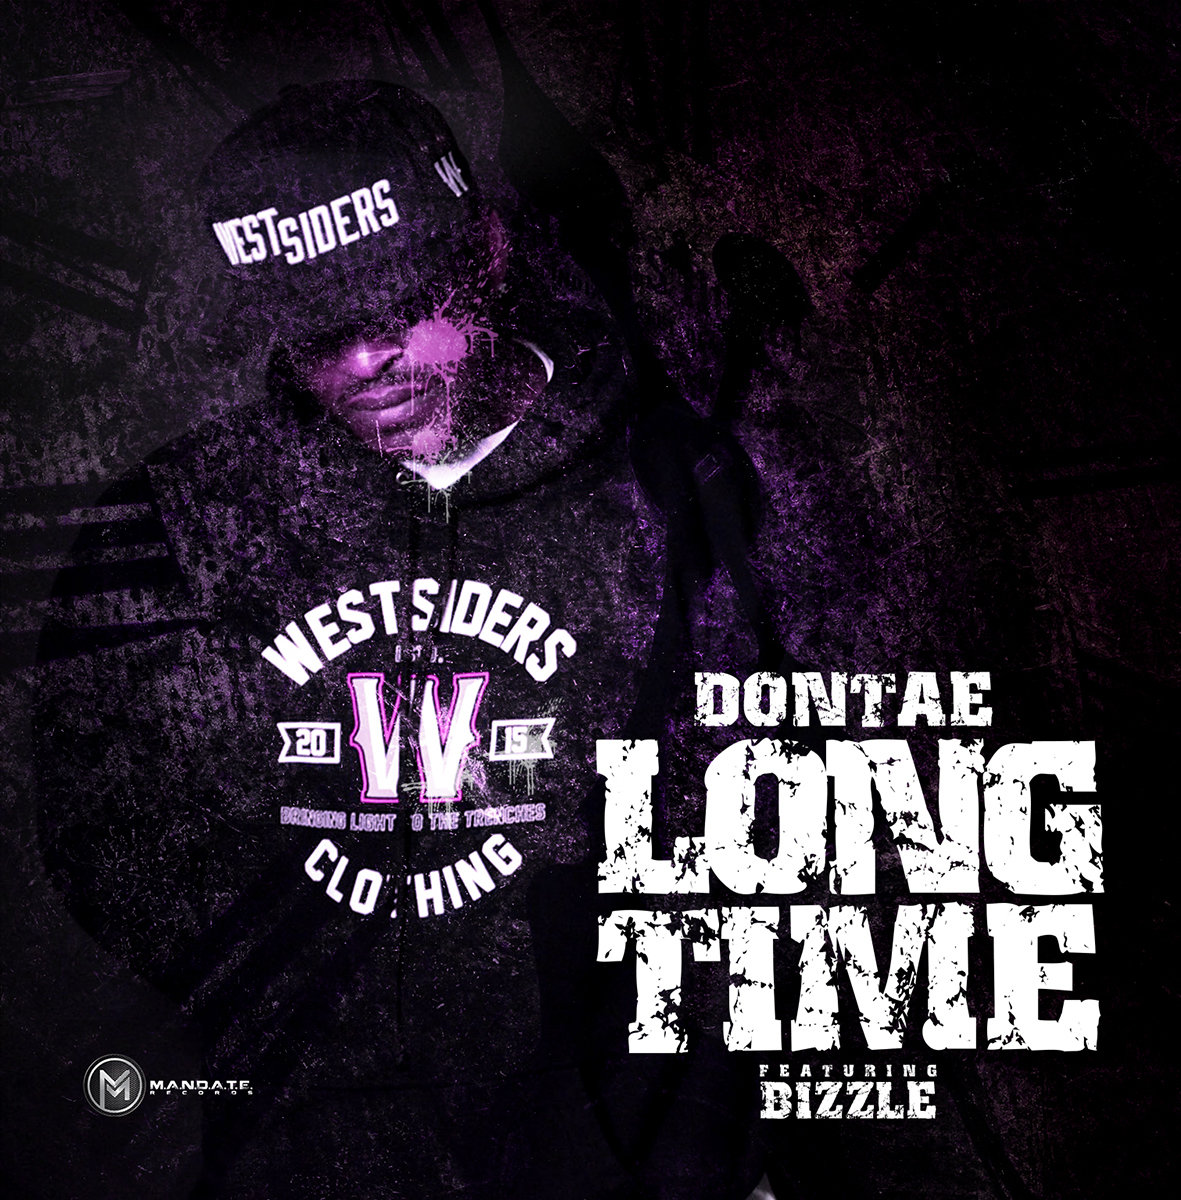 Dontae - Long Time (Physical Copy) 1516